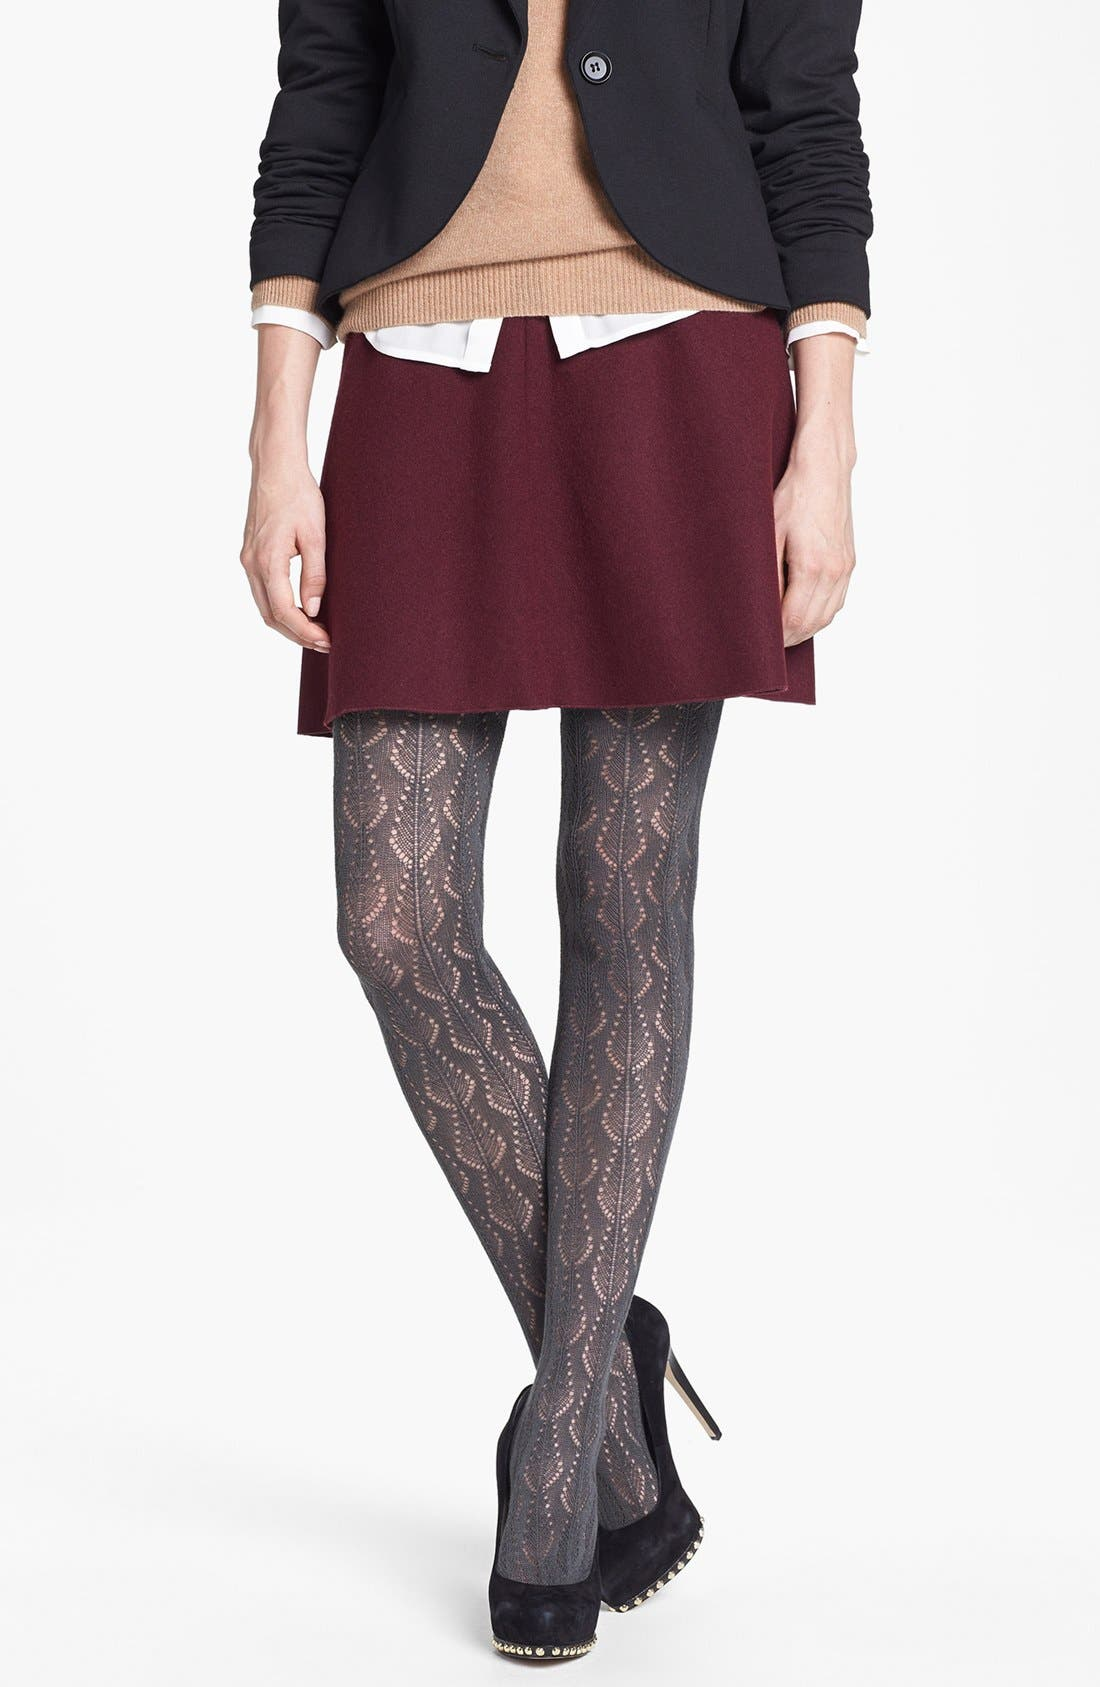 Alternate Image 1 Selected - Nordstrom 'Pretty Pointelle' Tights